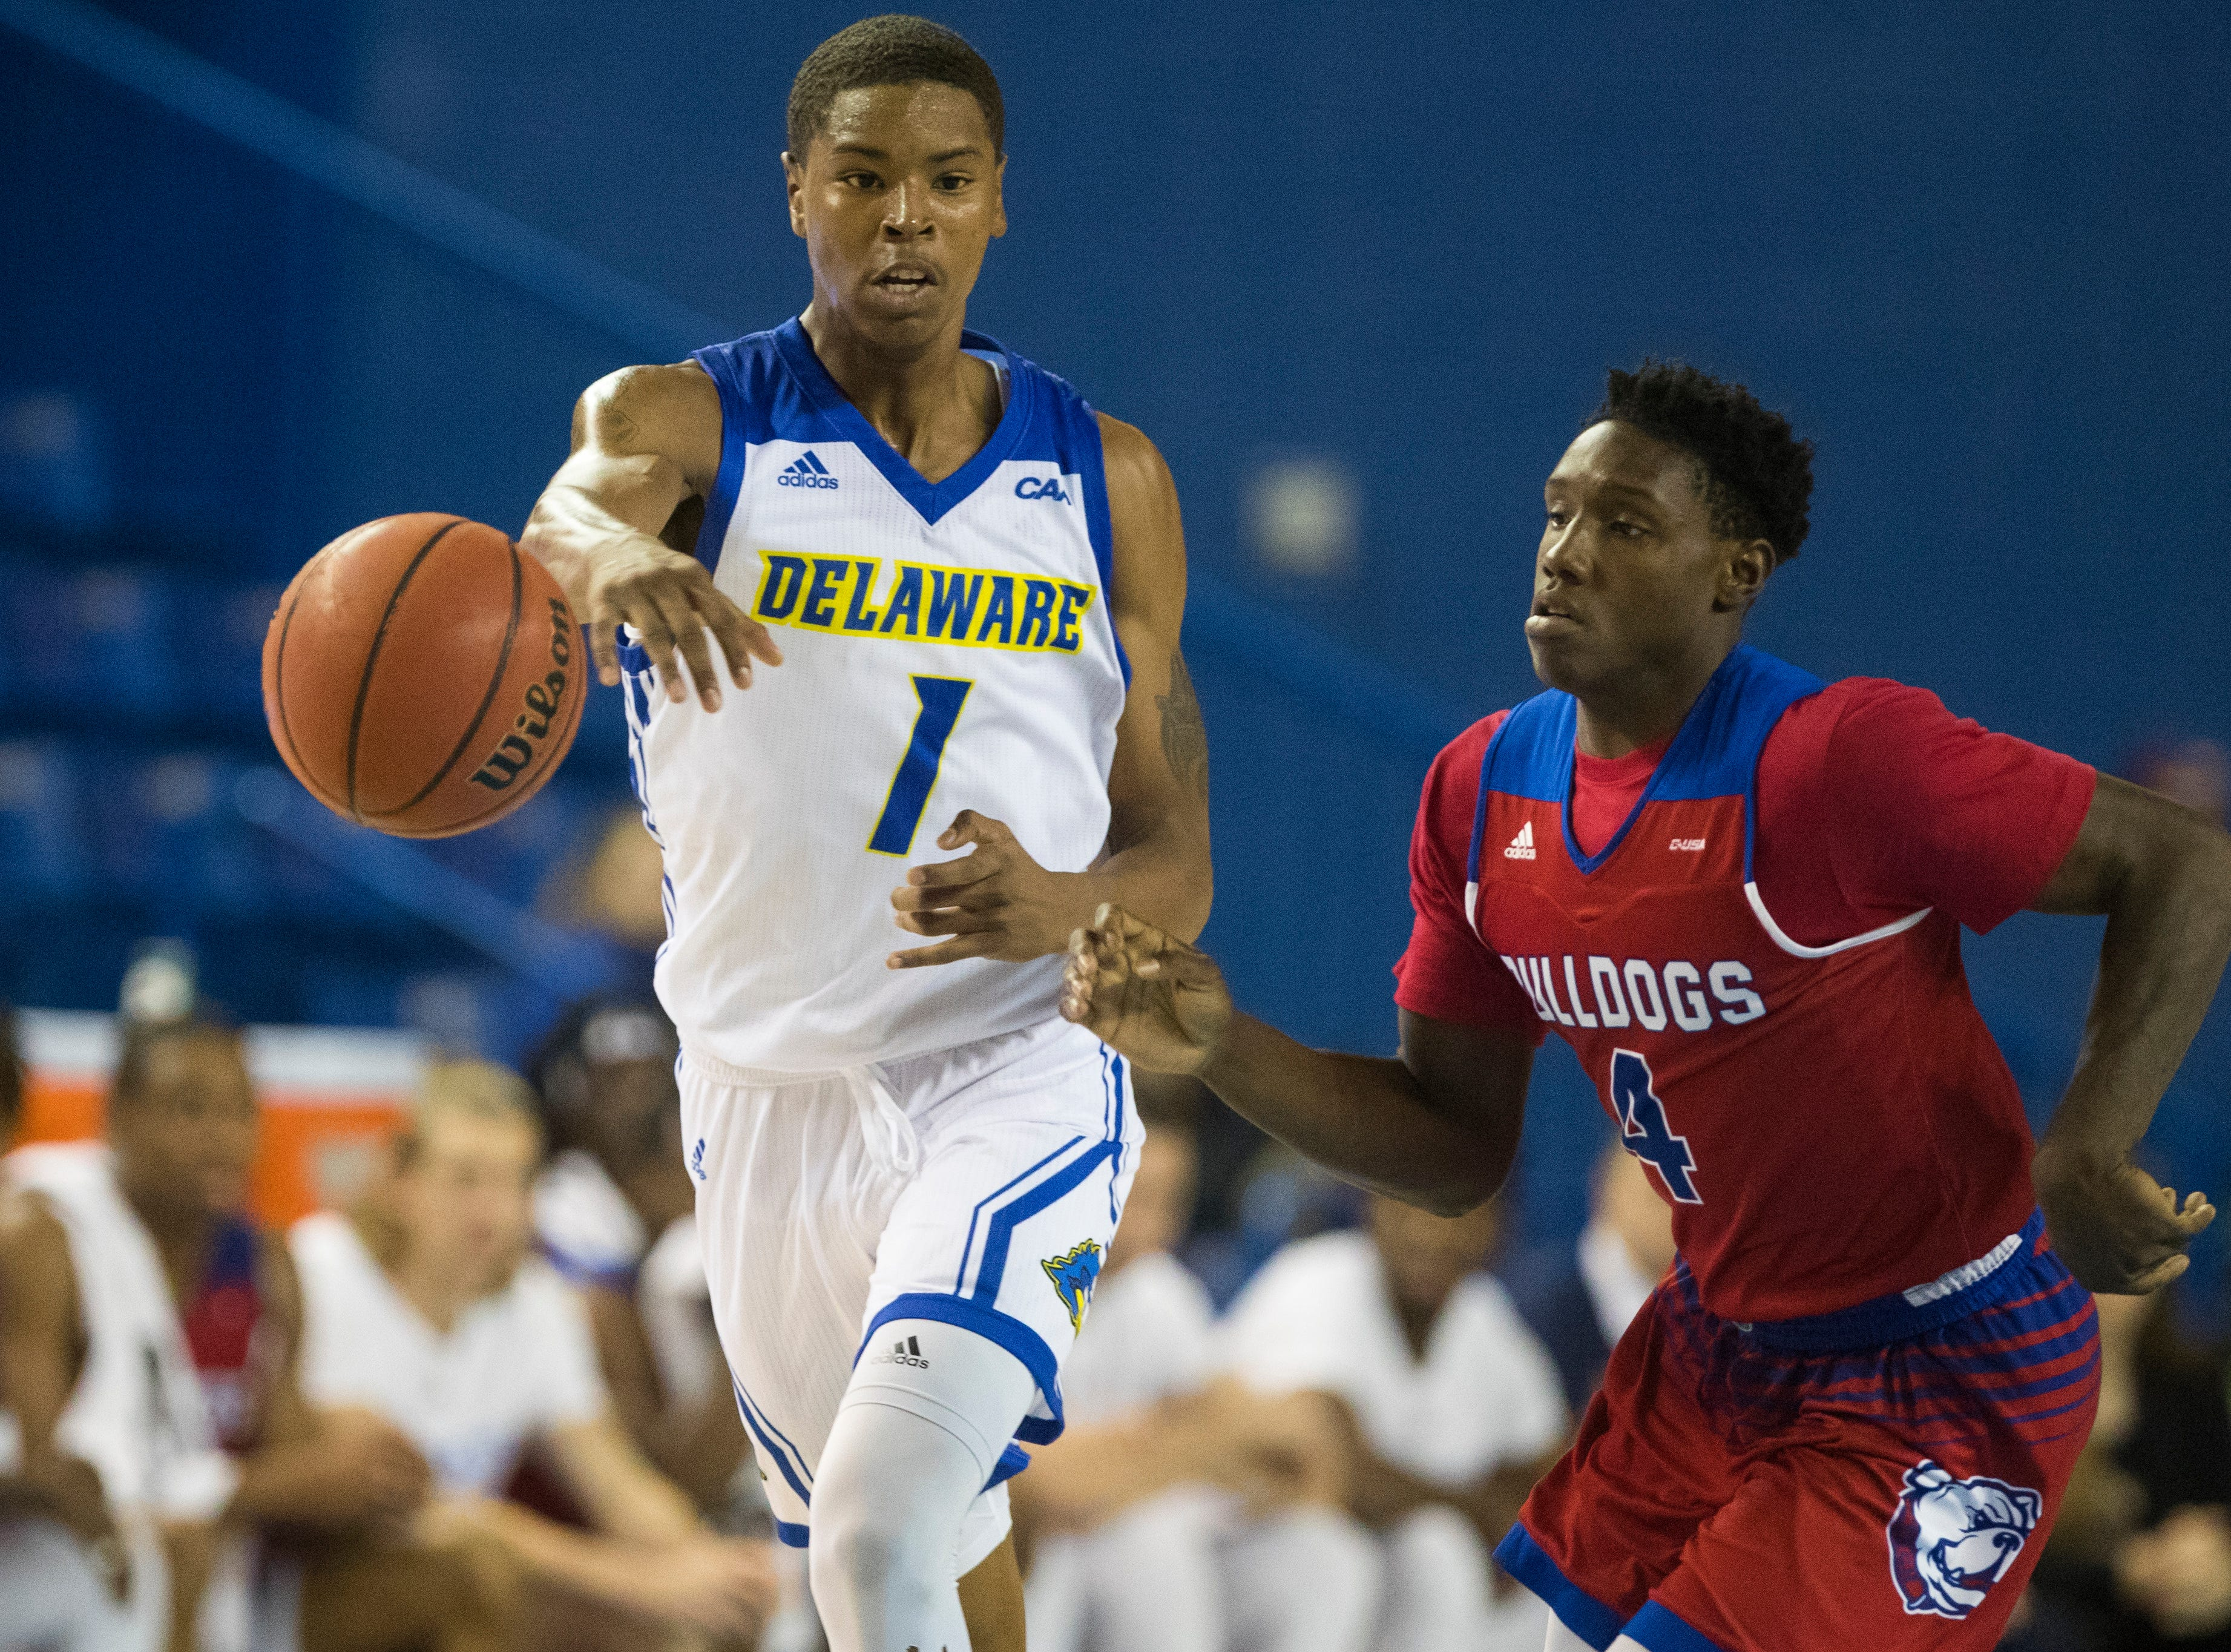 Delaware's Kevin Anderson (1) passes to a teammate Monday at the Bob Carpenter Center. Delaware defeated Louisiana Tech 75-71.